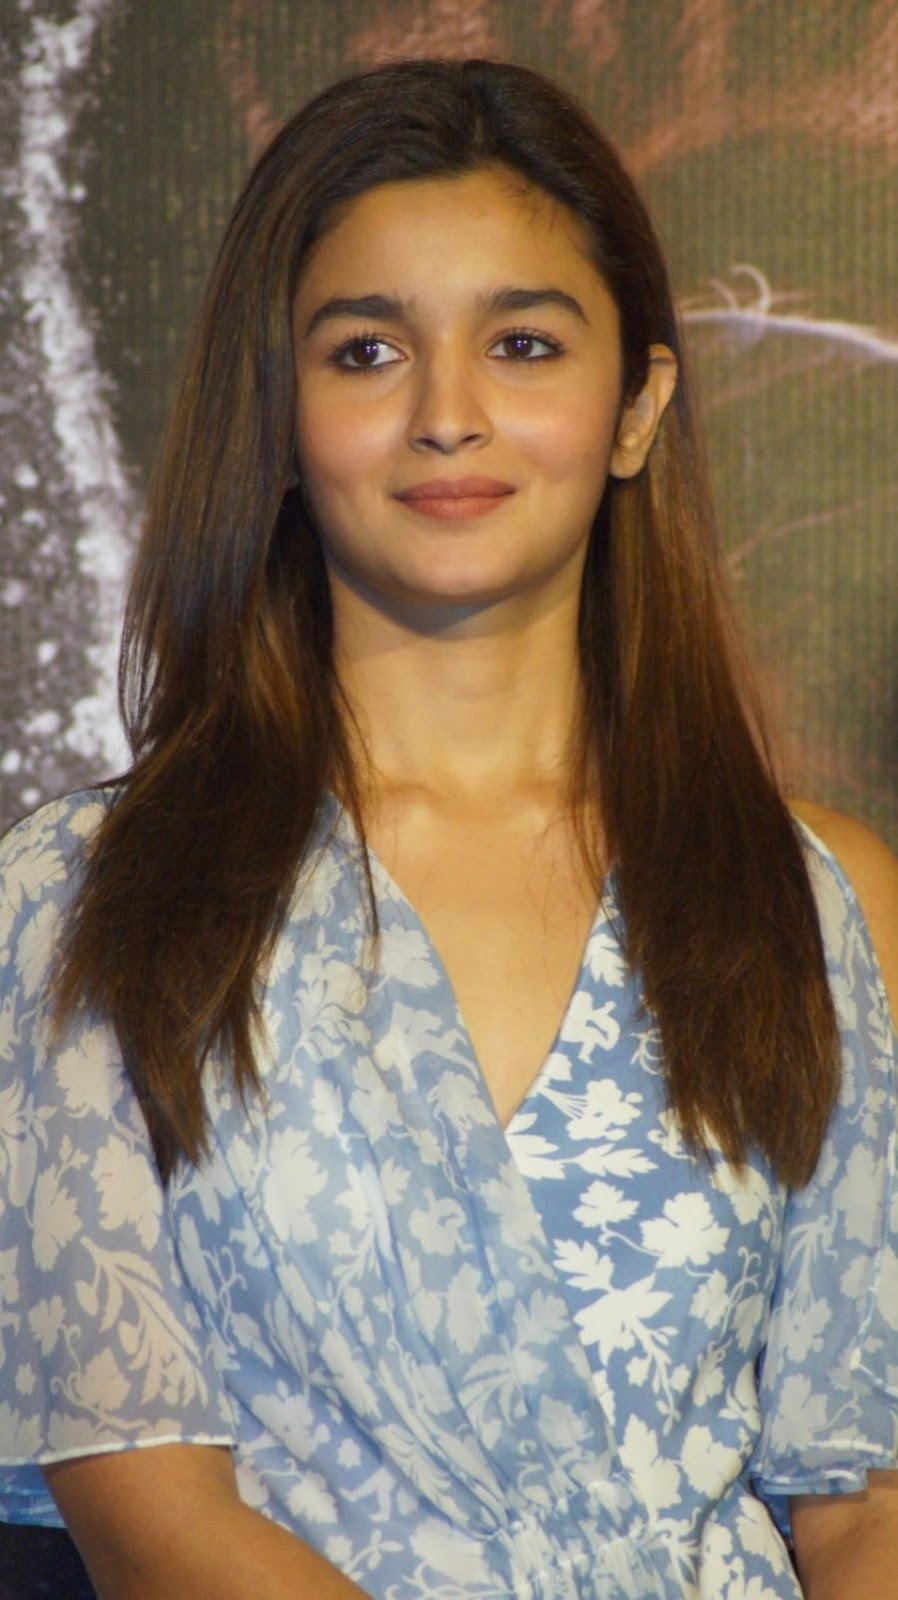 Alia Bhatt Unseen So Hot Photos In Blue Dress